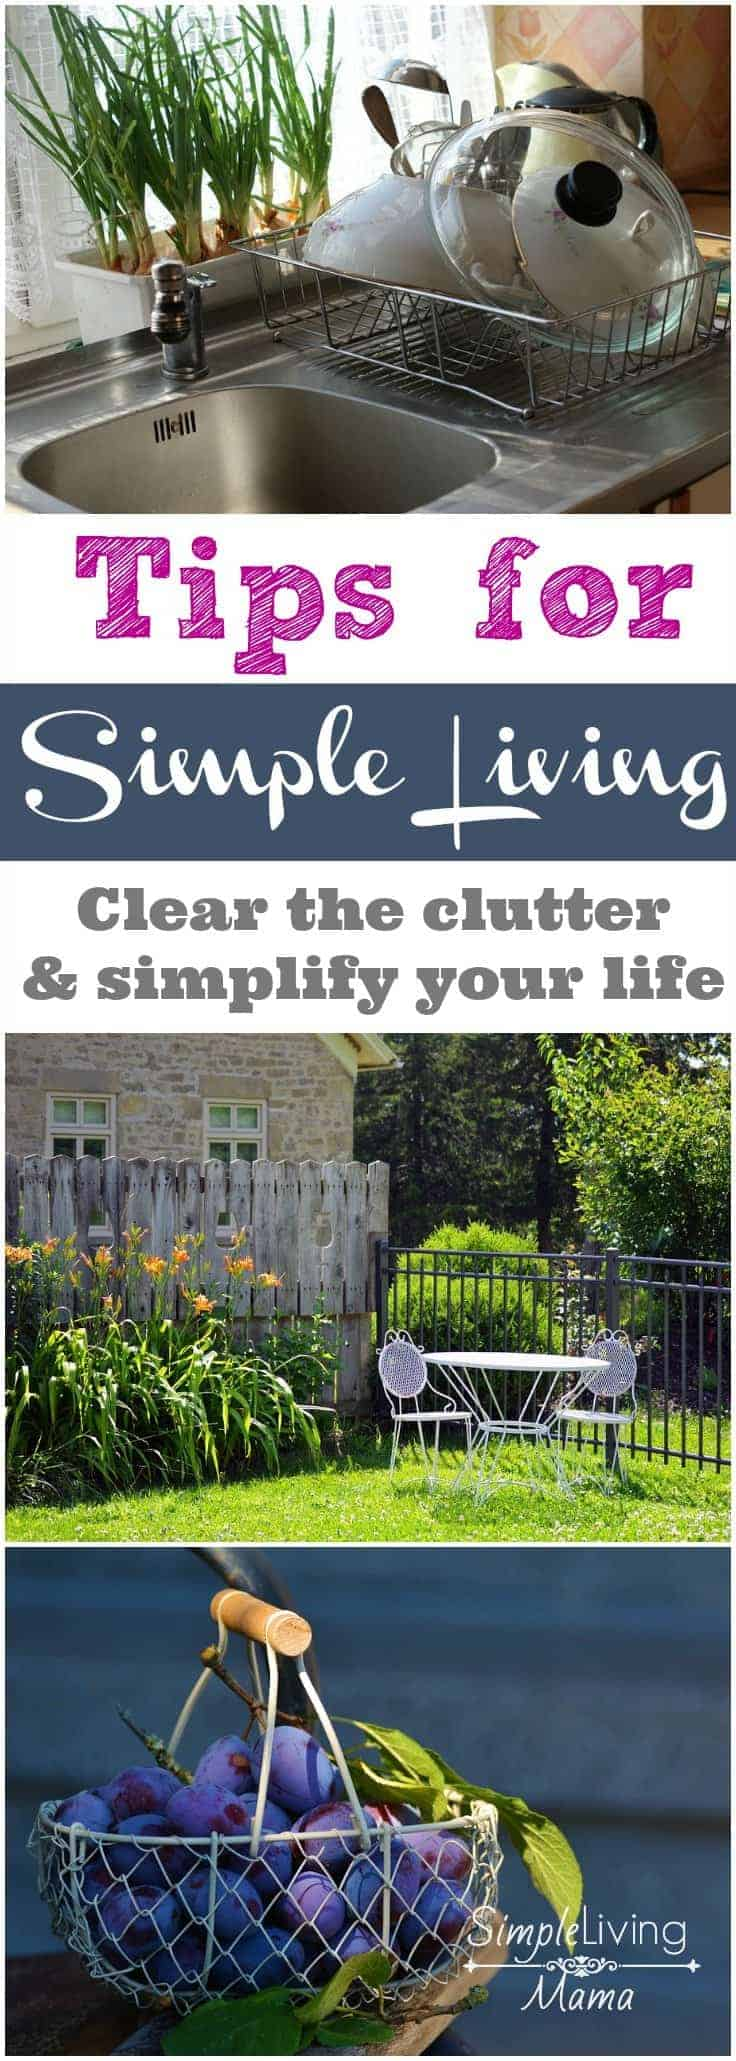 Simple living tips that will help you clear the clutter and simplify your life. You will learn tips to manage your schedule, meal times, home organization, and your finances.